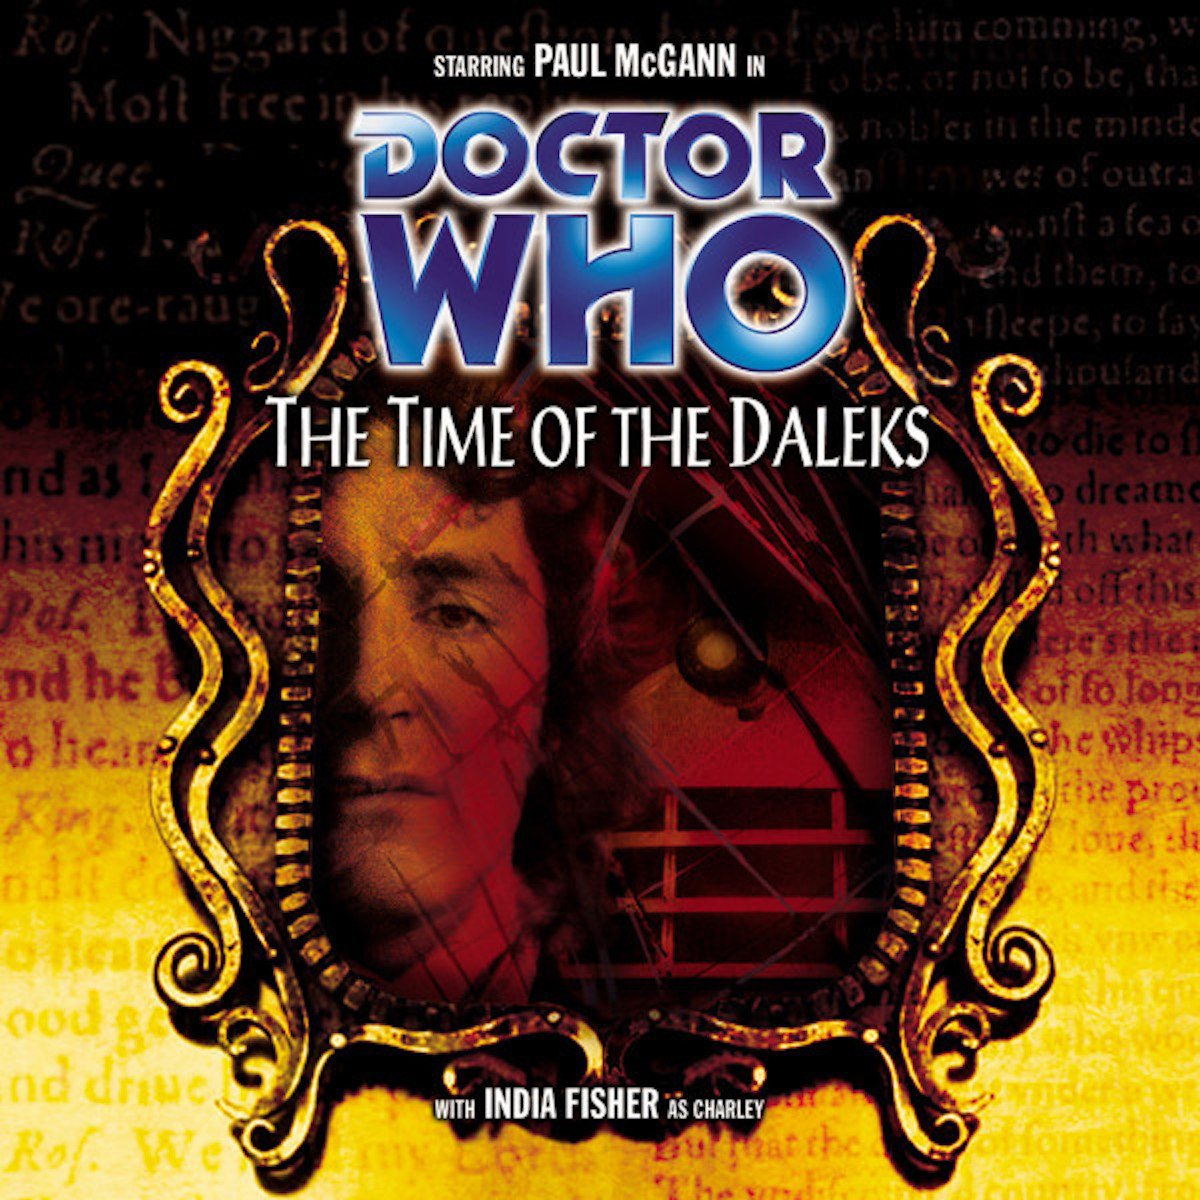 The Time of the Daleks